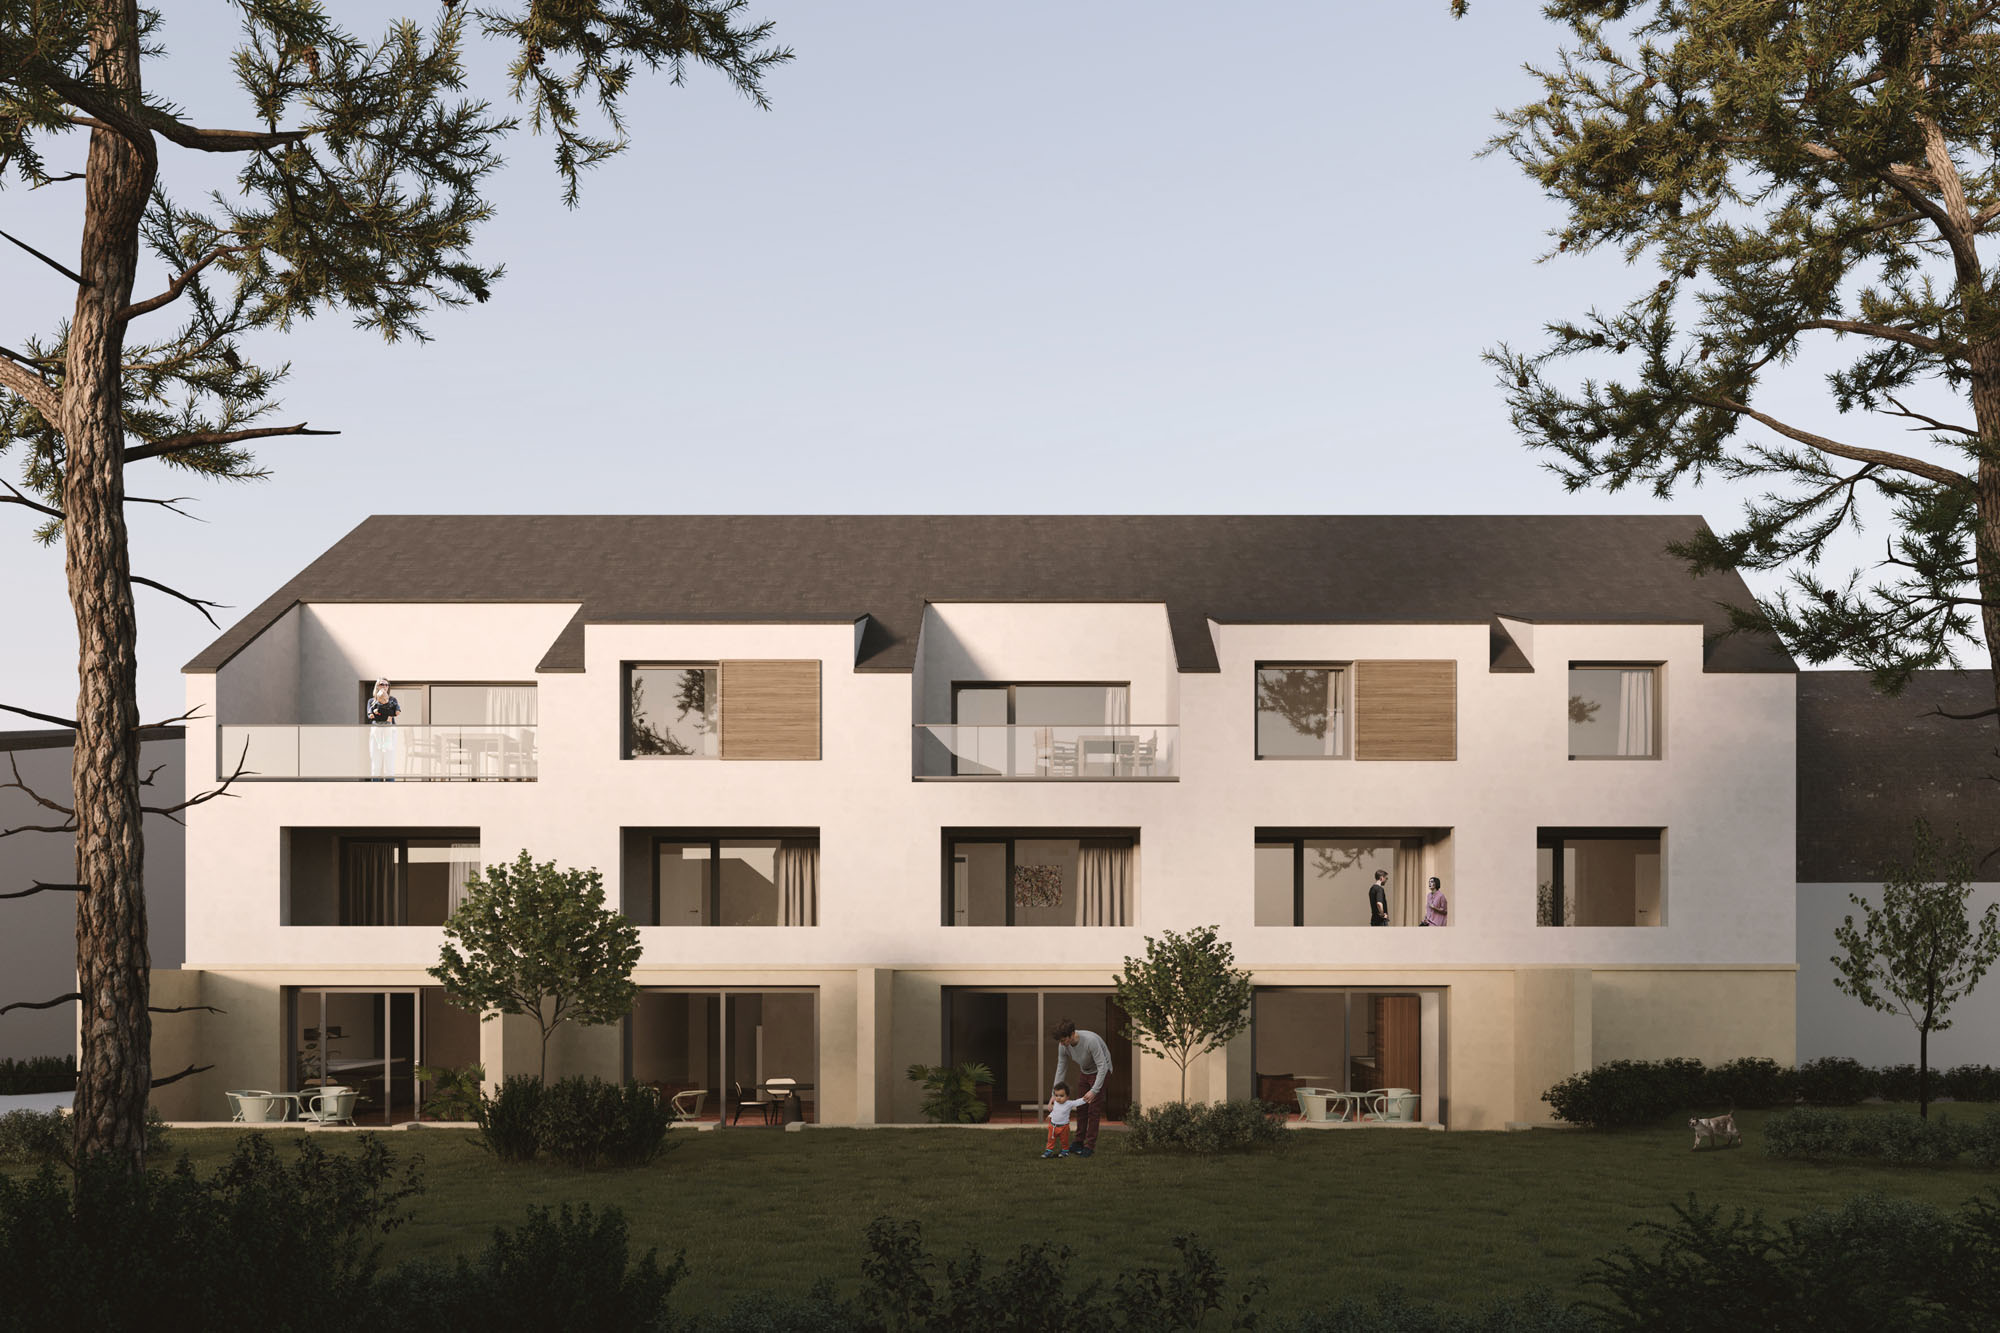 Exterior Visualization for an residential project in Luxembourg by Dieschbourg Wagner Architecture.